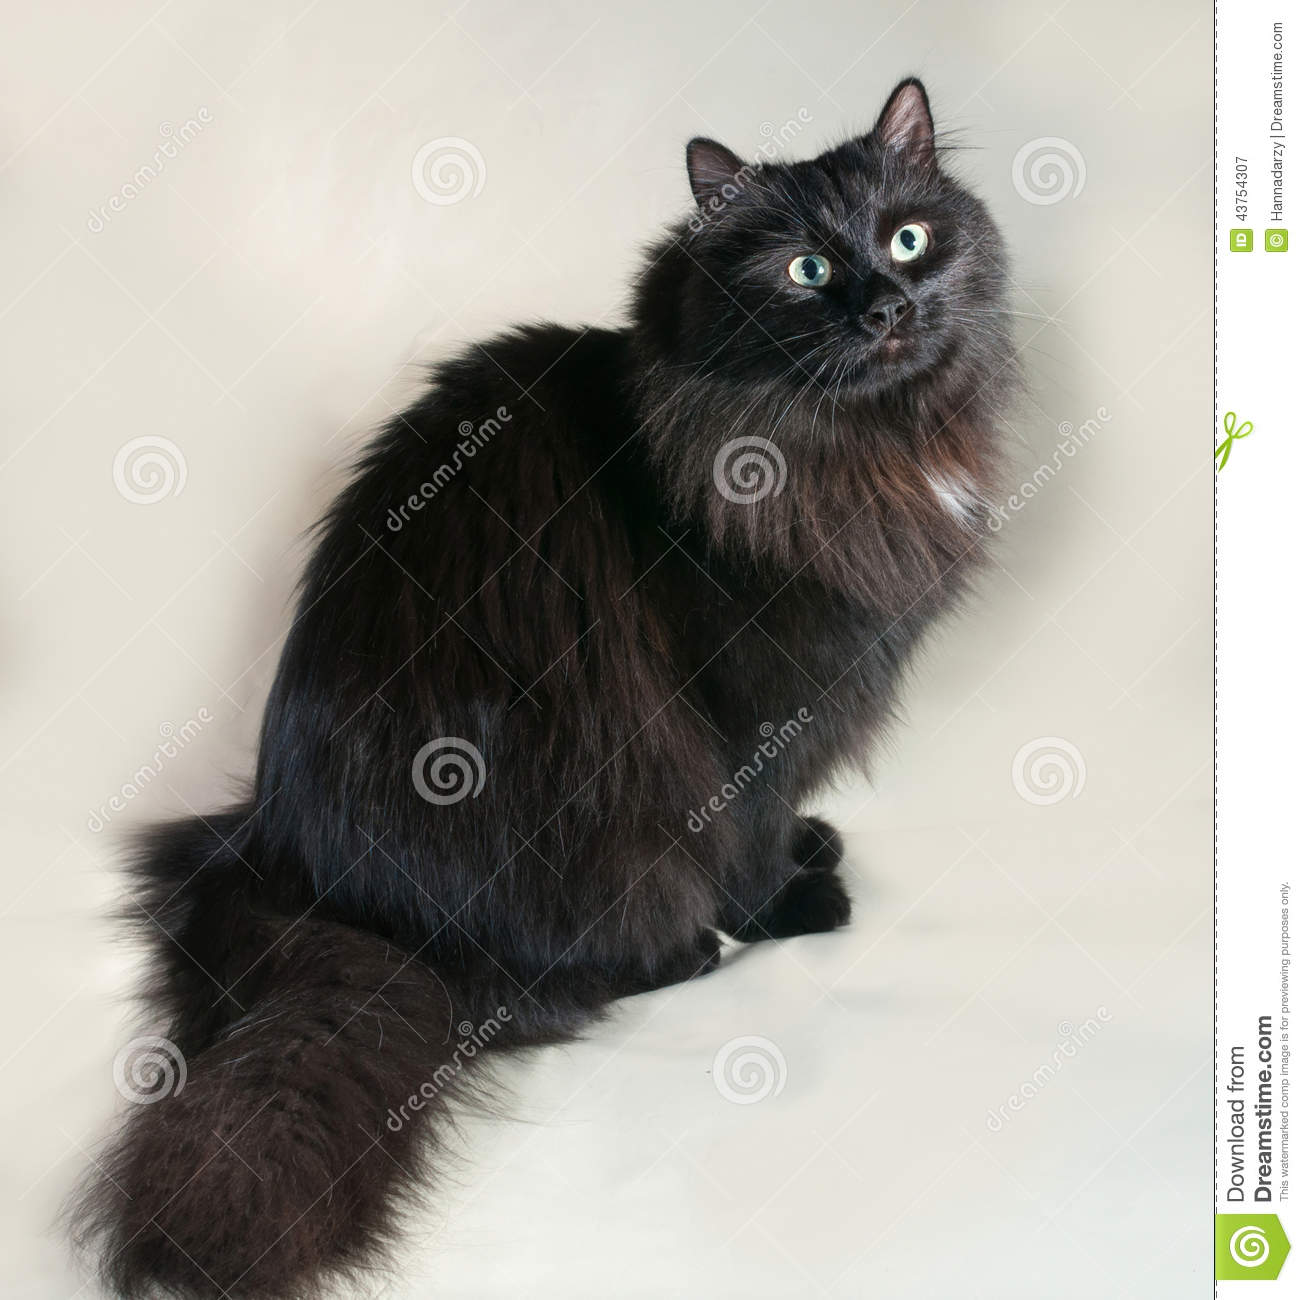 Black Fluffy Cat With Green Eyes